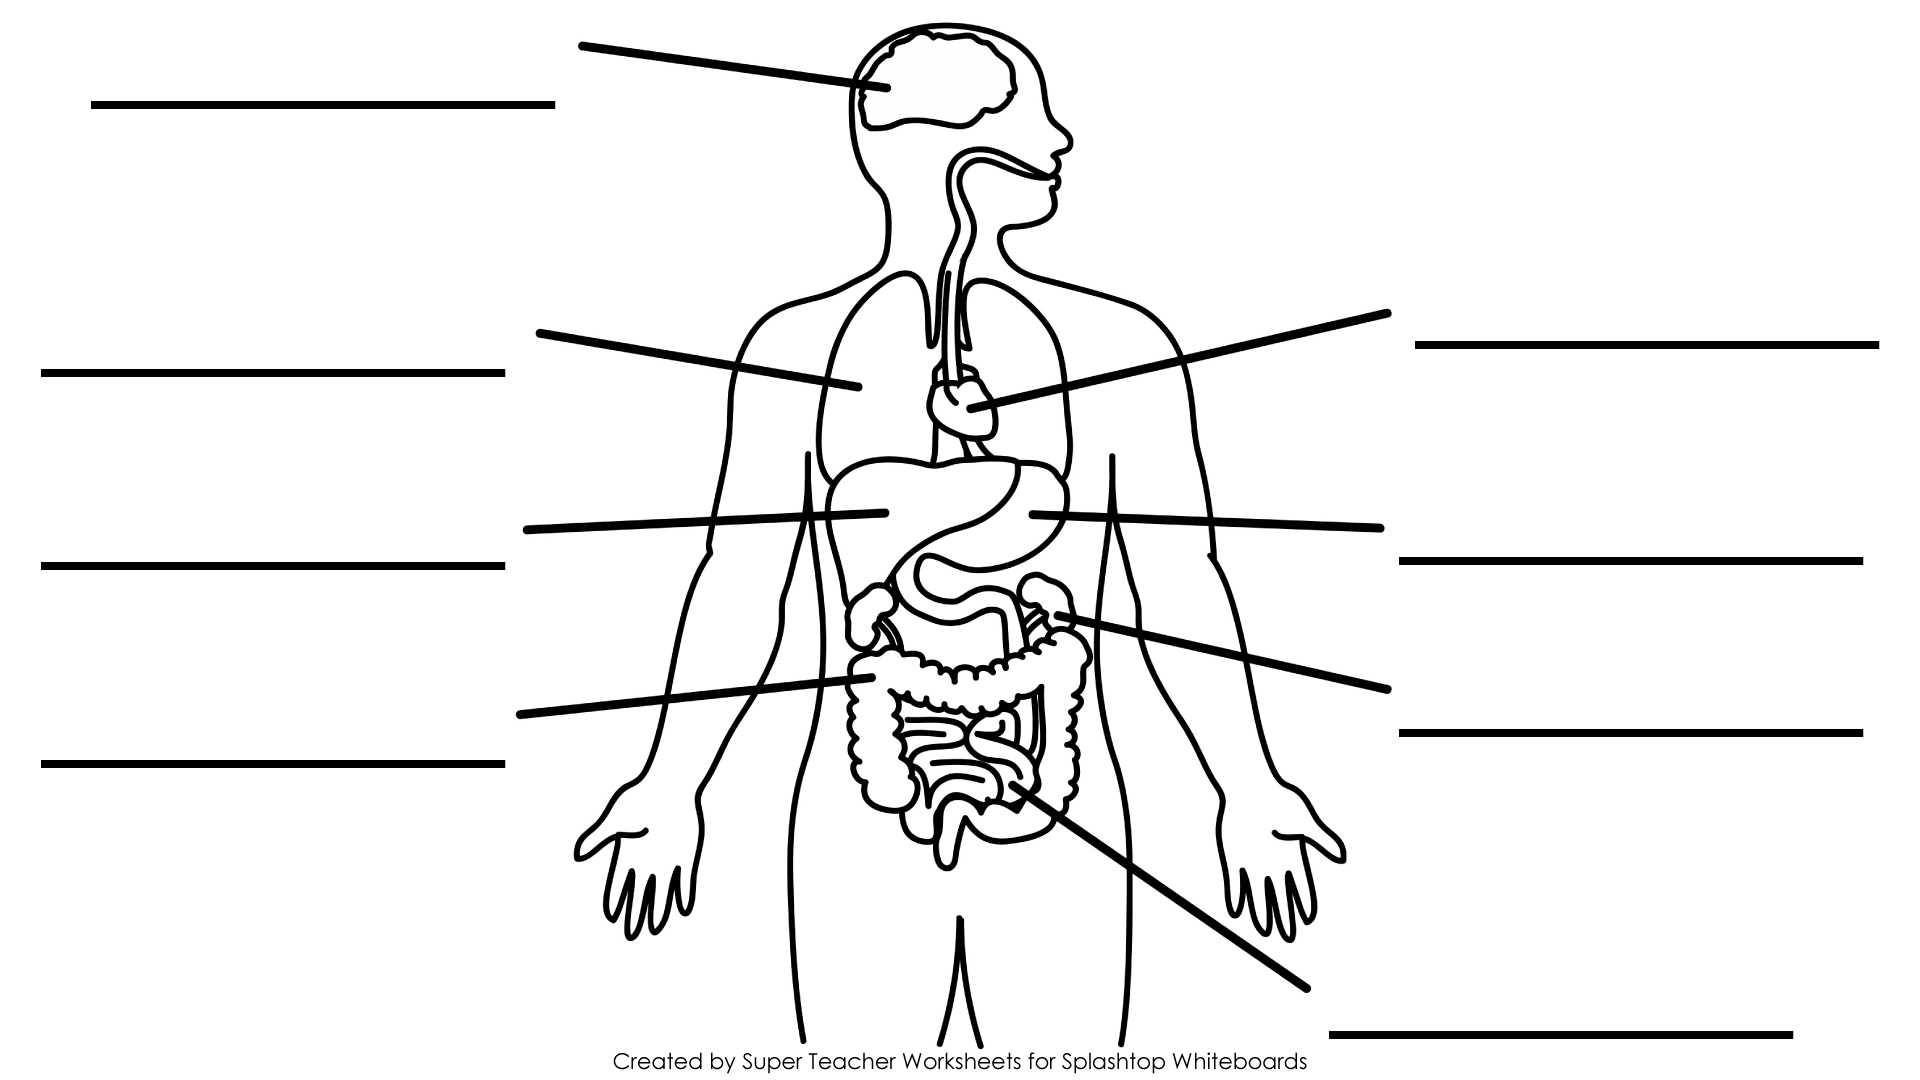 Human Body Organs Unlabeled Diagram